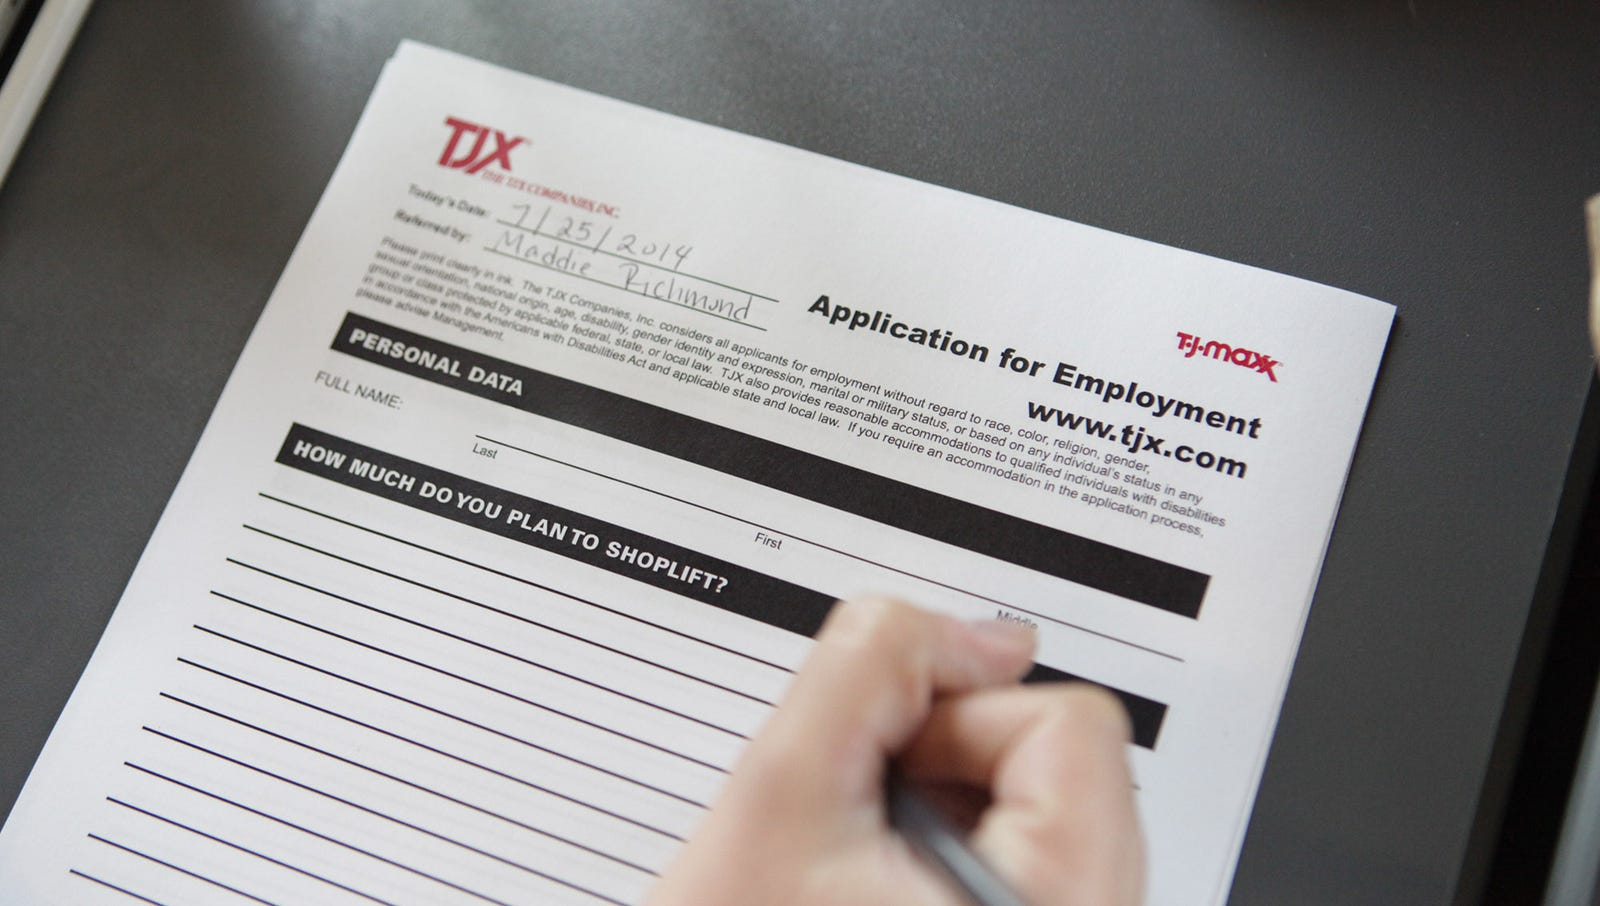 T.J. Maxx Job Application Just Asks Prospective Employees How Much They Plan To  Shoplift